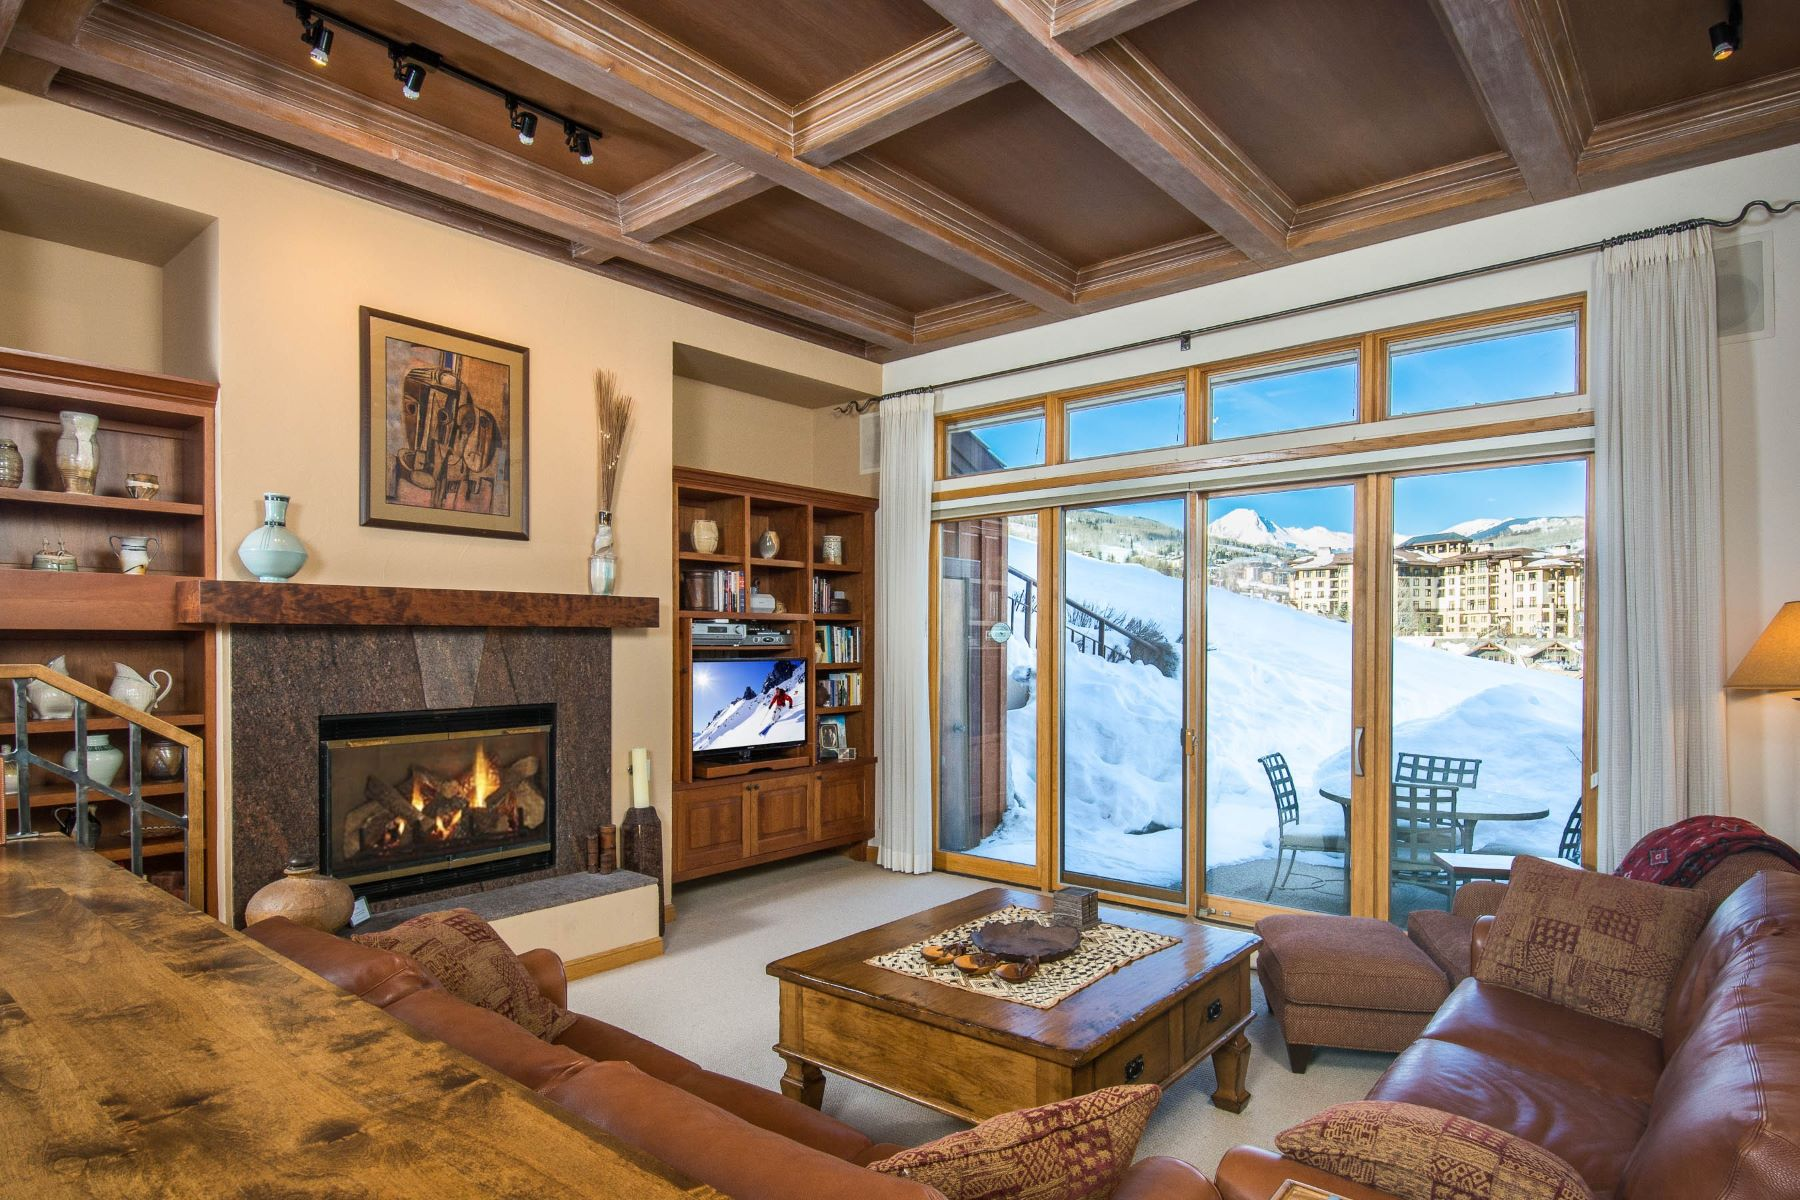 共管物業 為 出售 在 Spacious 3 Bedroom Ski Retreat 770 Ridge Road, Unit 5 Snowmass Village, 科羅拉多州, 81615 美國